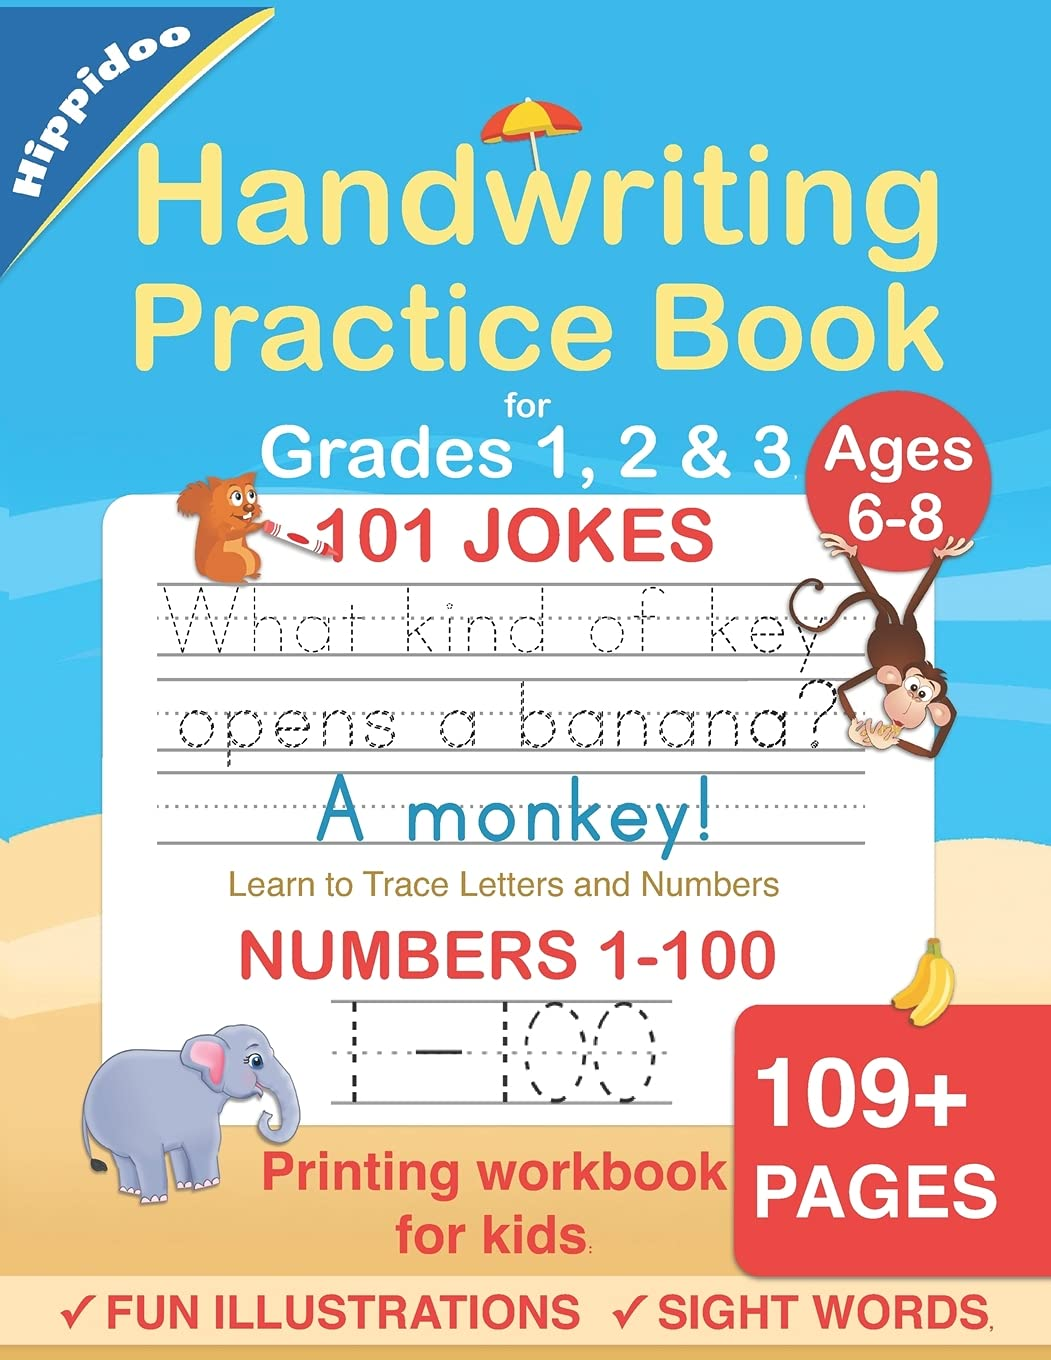 Handwriting Practice Book for Kids Ages 6-8: Printing workbook for Grades 1, 2 & 3, Learn to Trace Alphabet Letters and Numbers 1-100, Sight Words, 101 Jokes: Improve writing penmanship